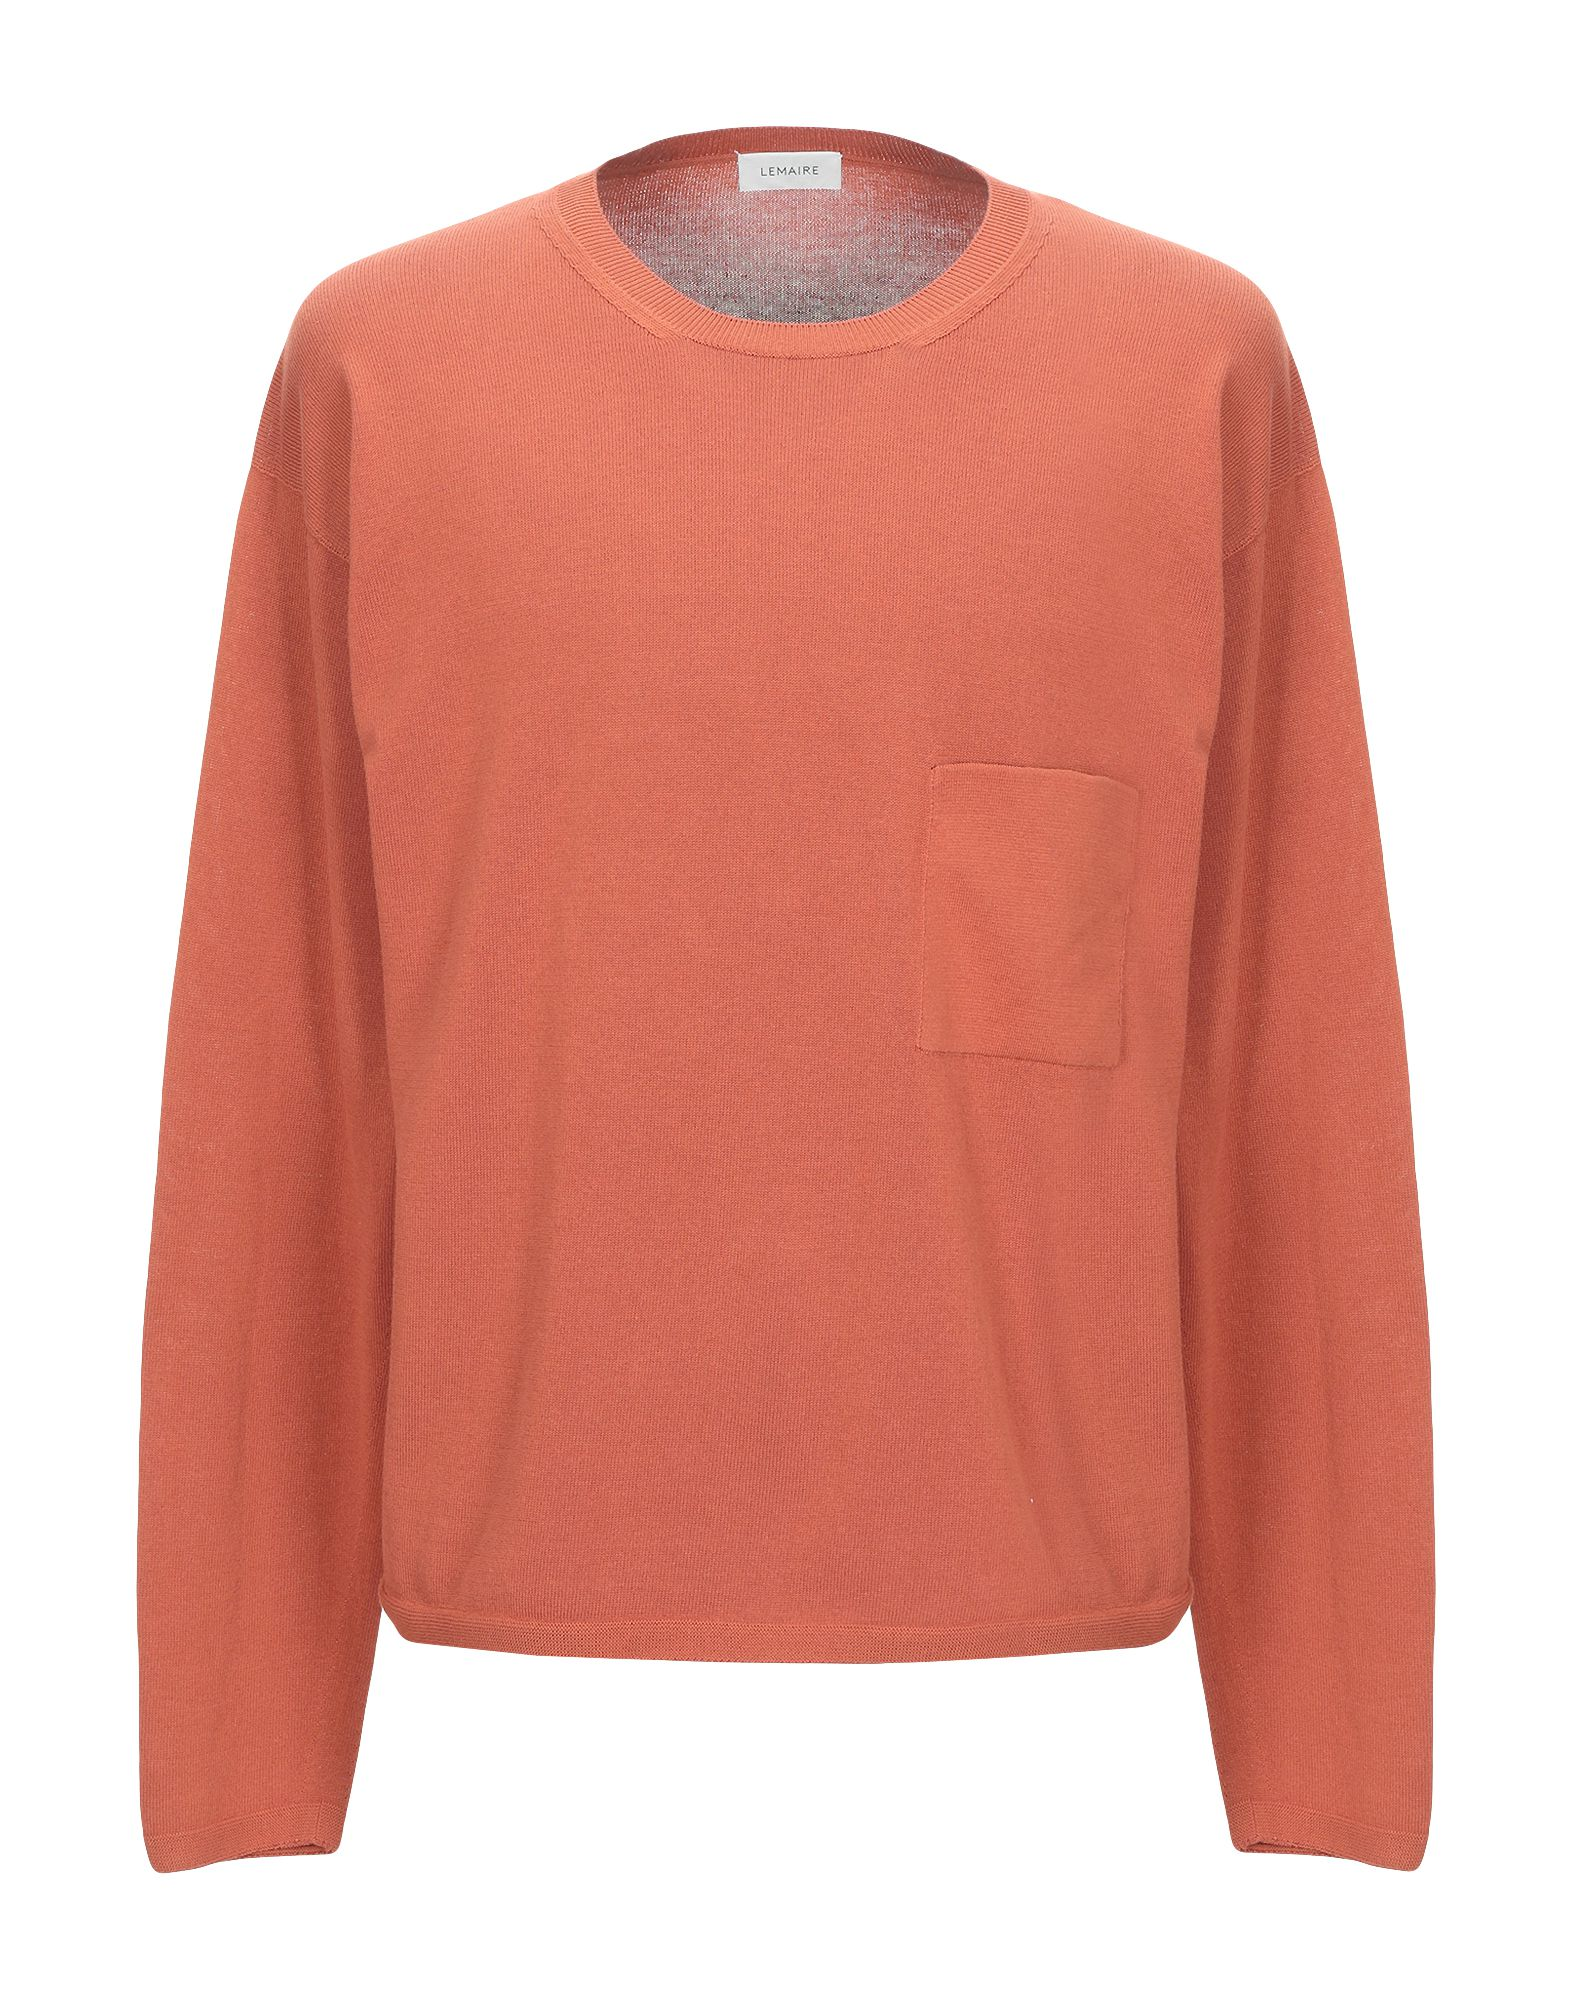 LEMAIRE | LEMAIRE Sweaters 39961201 | Goxip